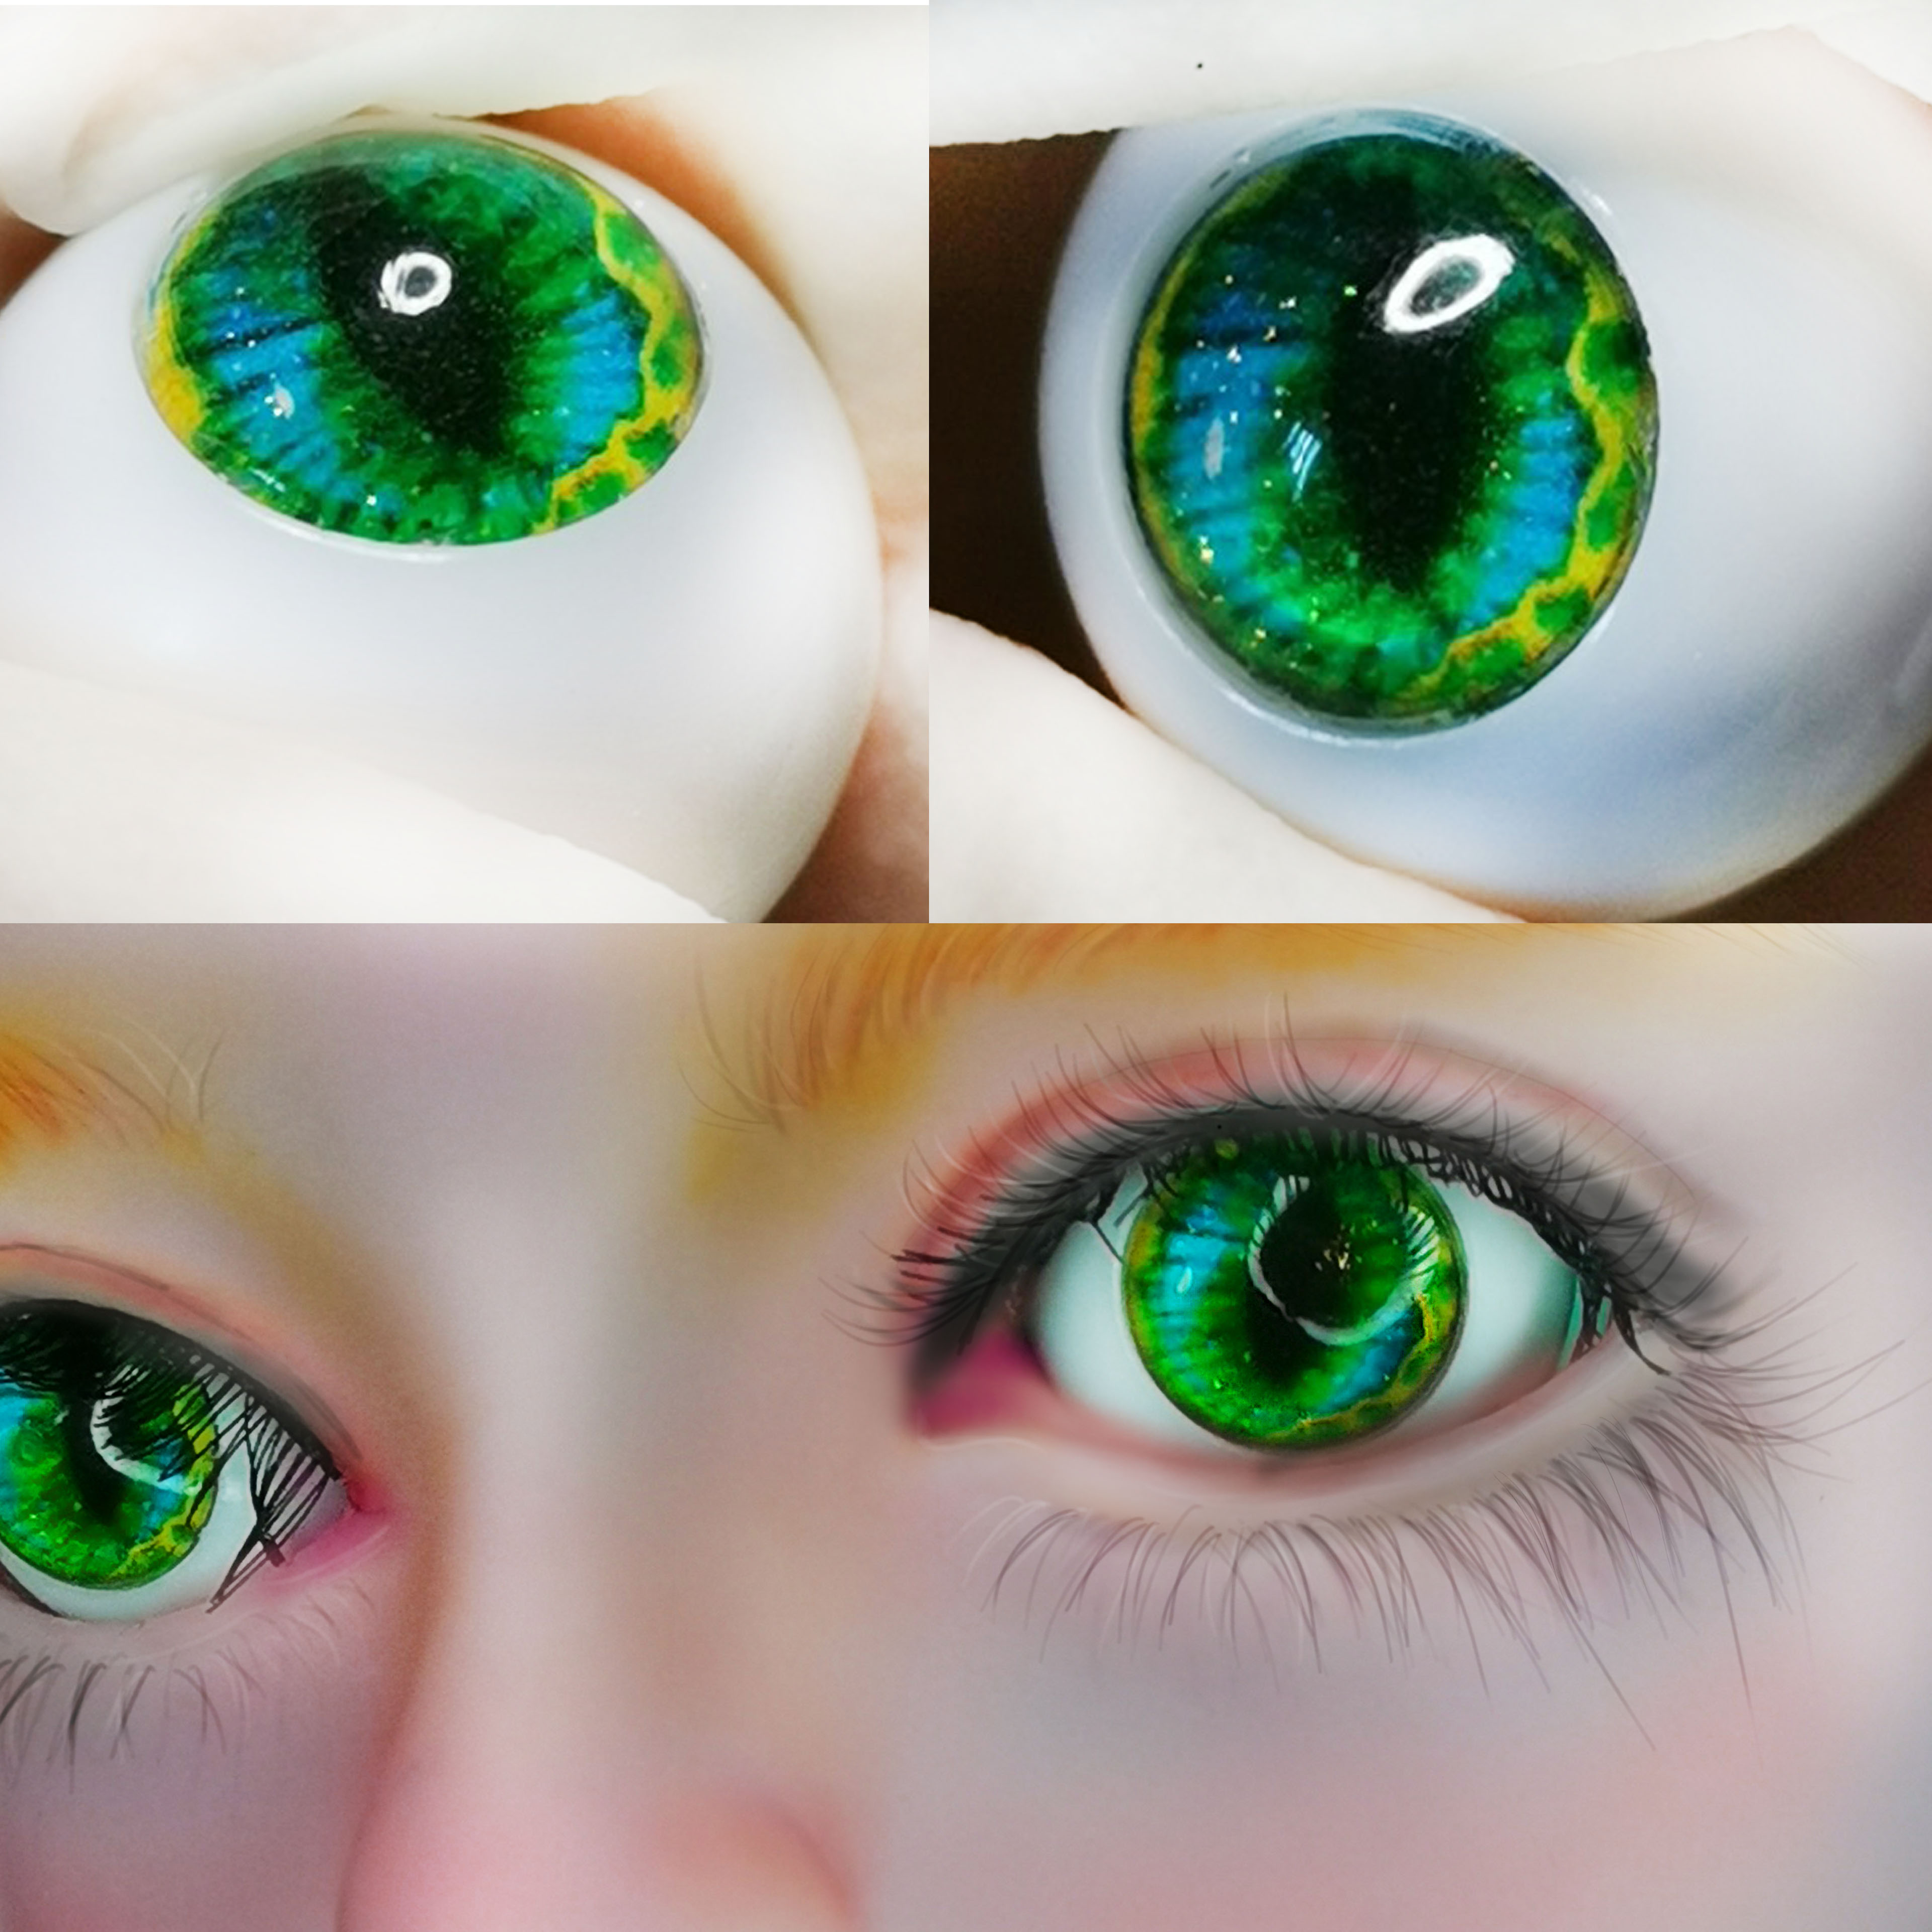 High-quality 20MM Grey Glass BJD Eyes for Reborn//NewBorn Luts AOD DOD DZ Doll